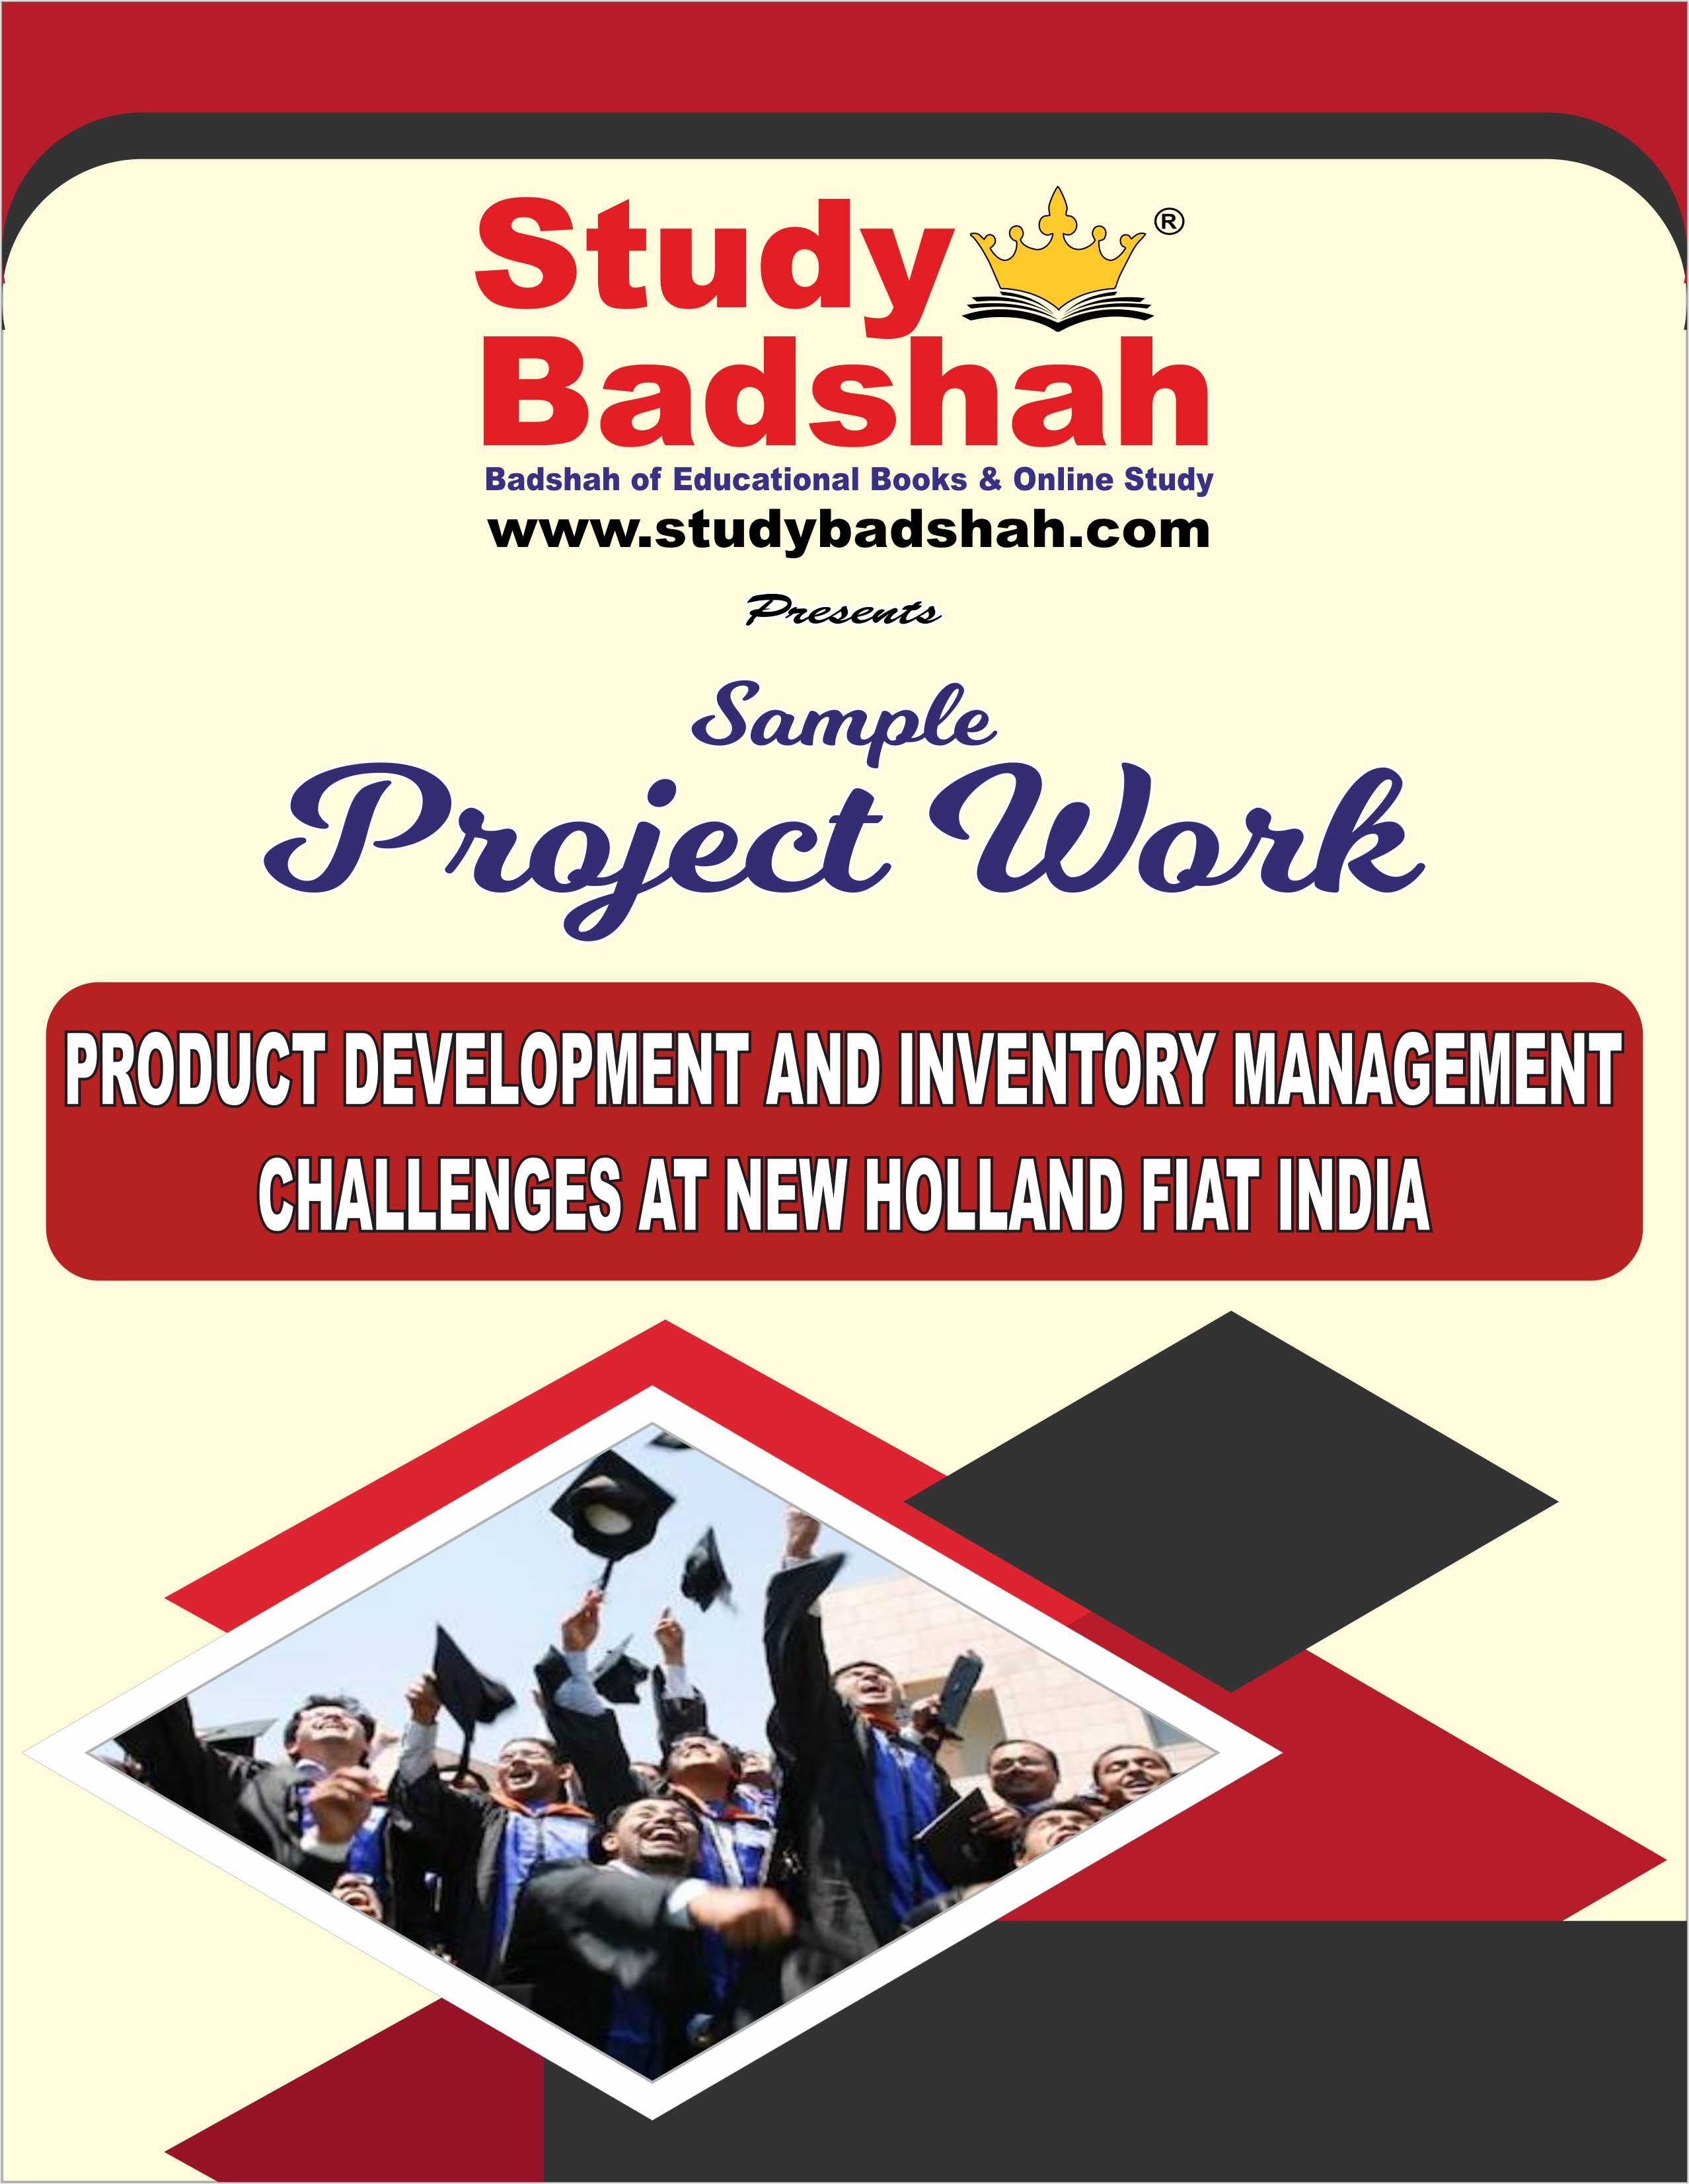 PRODUCT DEVELOPMENT AND INVENTORY MANAGEMENT CHALLENGES AT NEW HOLLAND FIAT INDIA